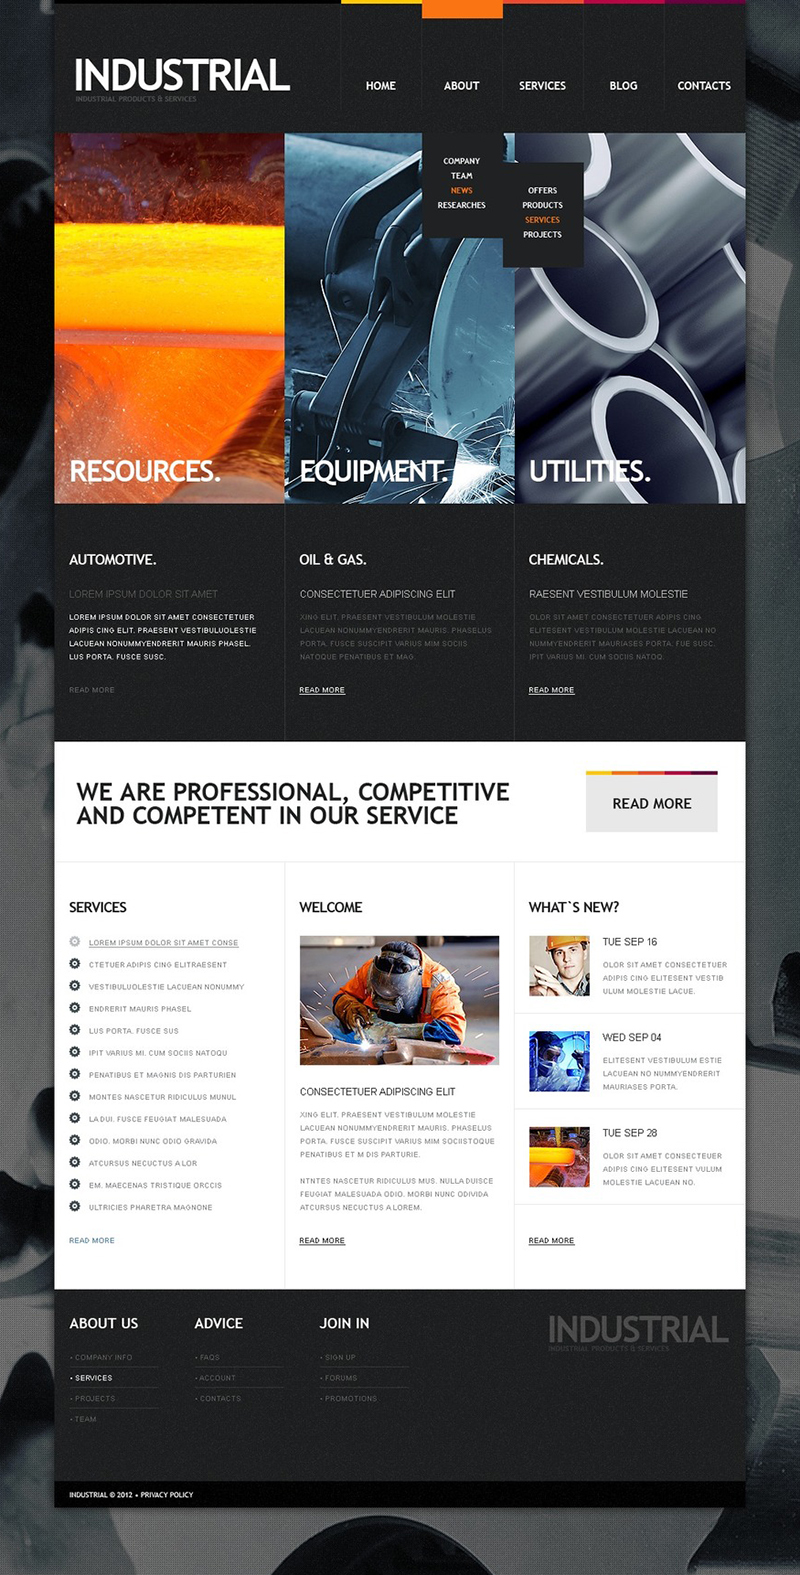 Drupal Industrial Template